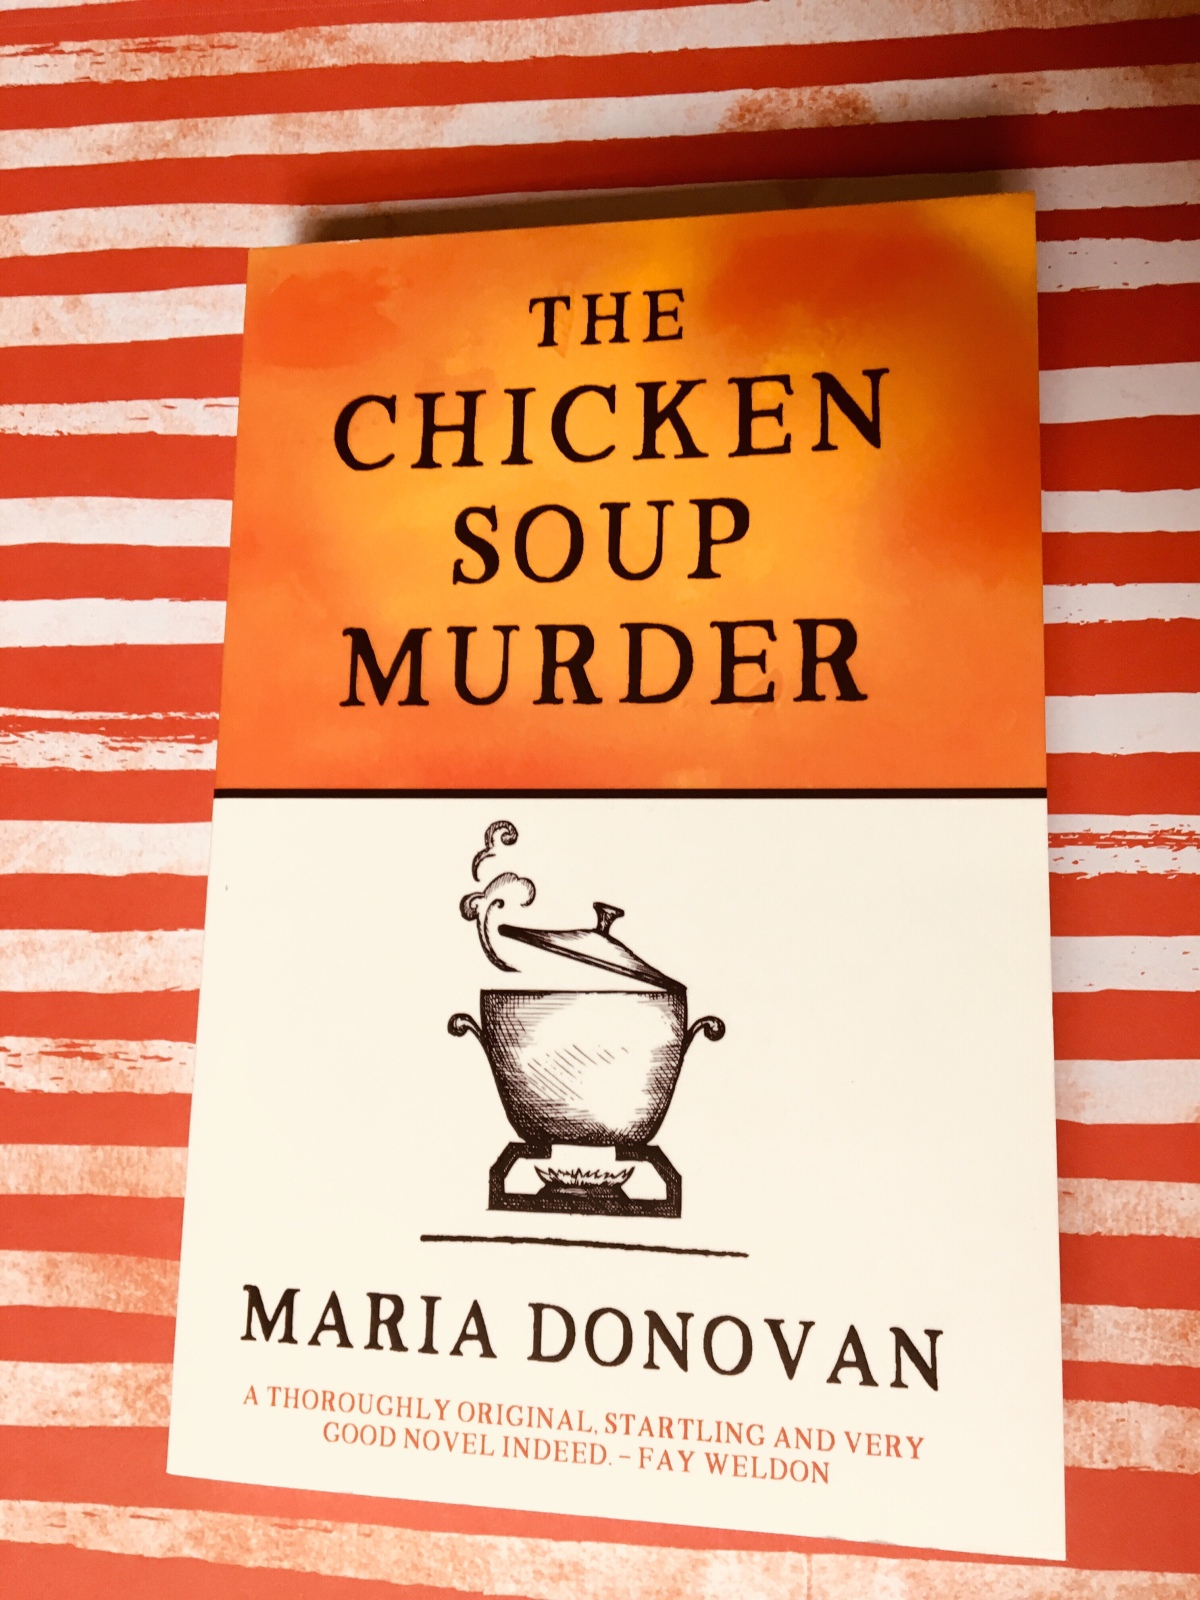 Review of The Chicken Soup Murder